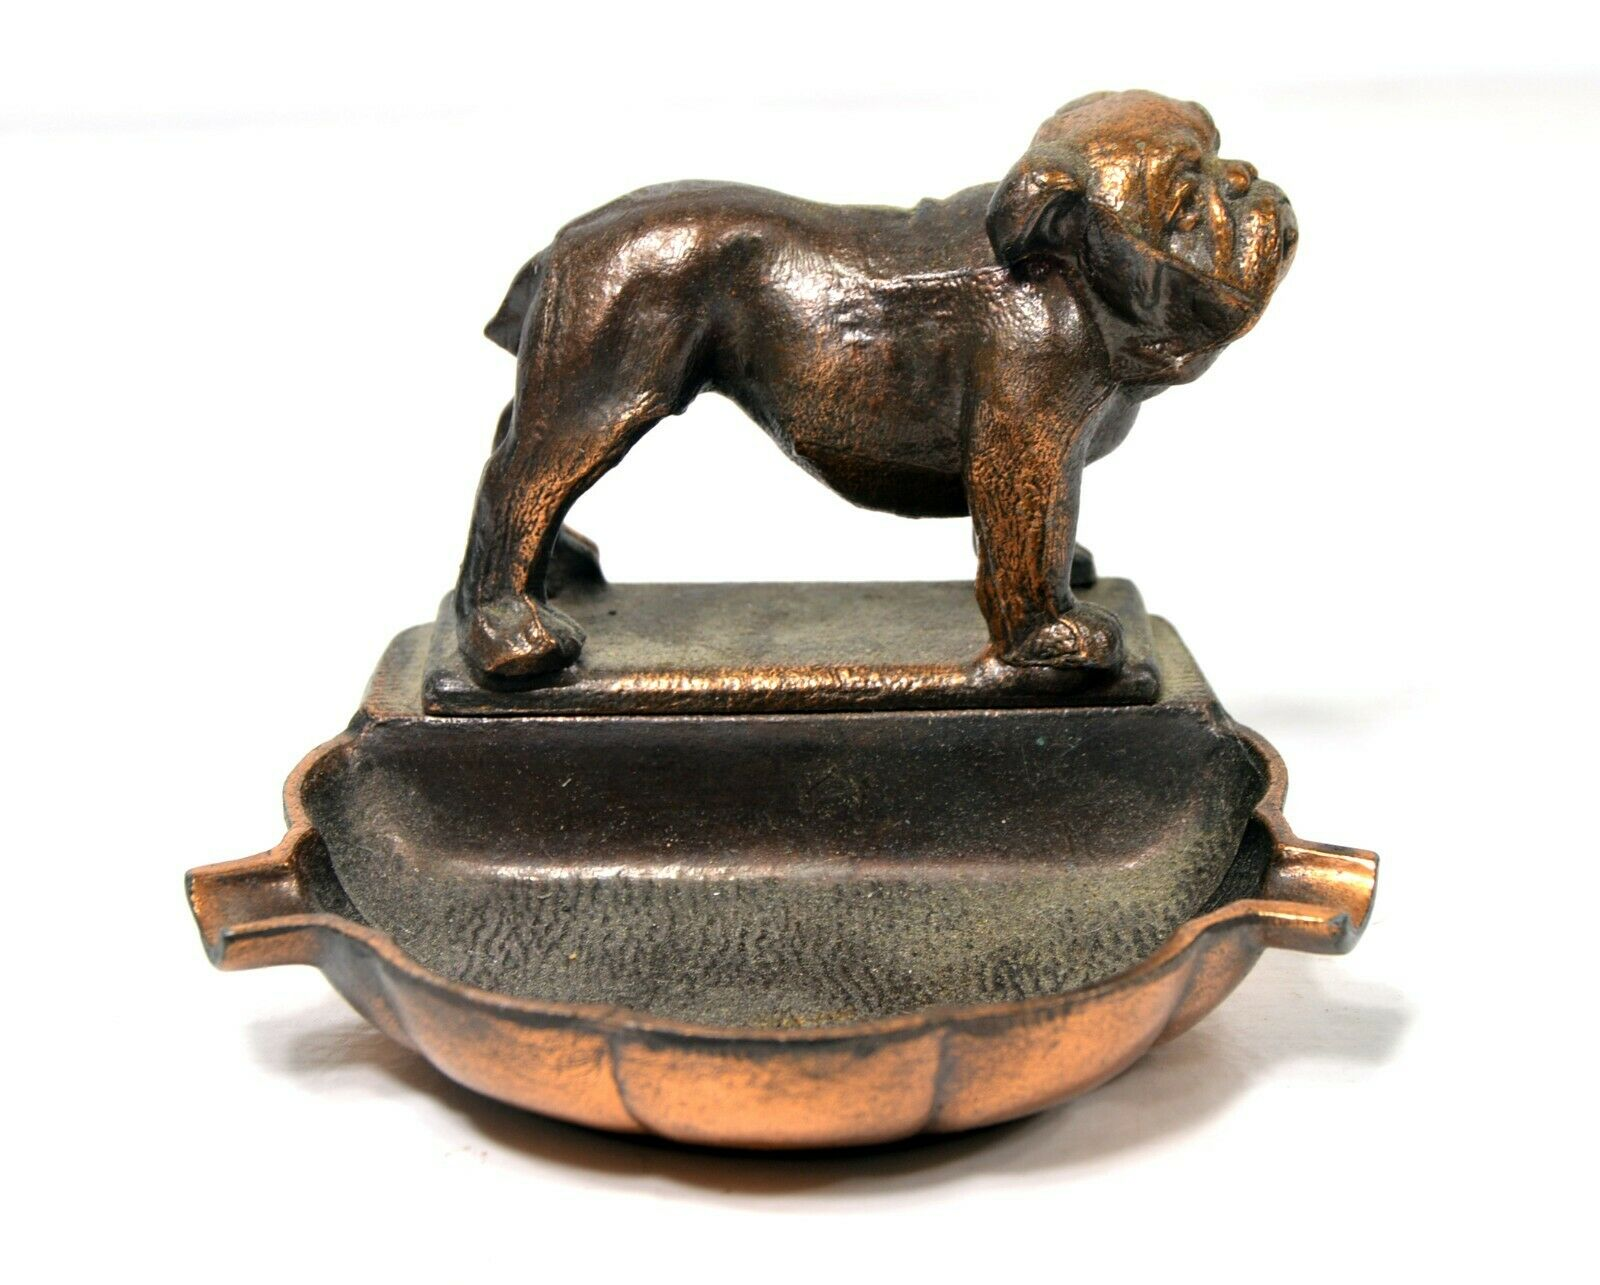 Vintage Bulldog Ashtray Old Heavy Bronze Colored Metal Estate Collectible 4in